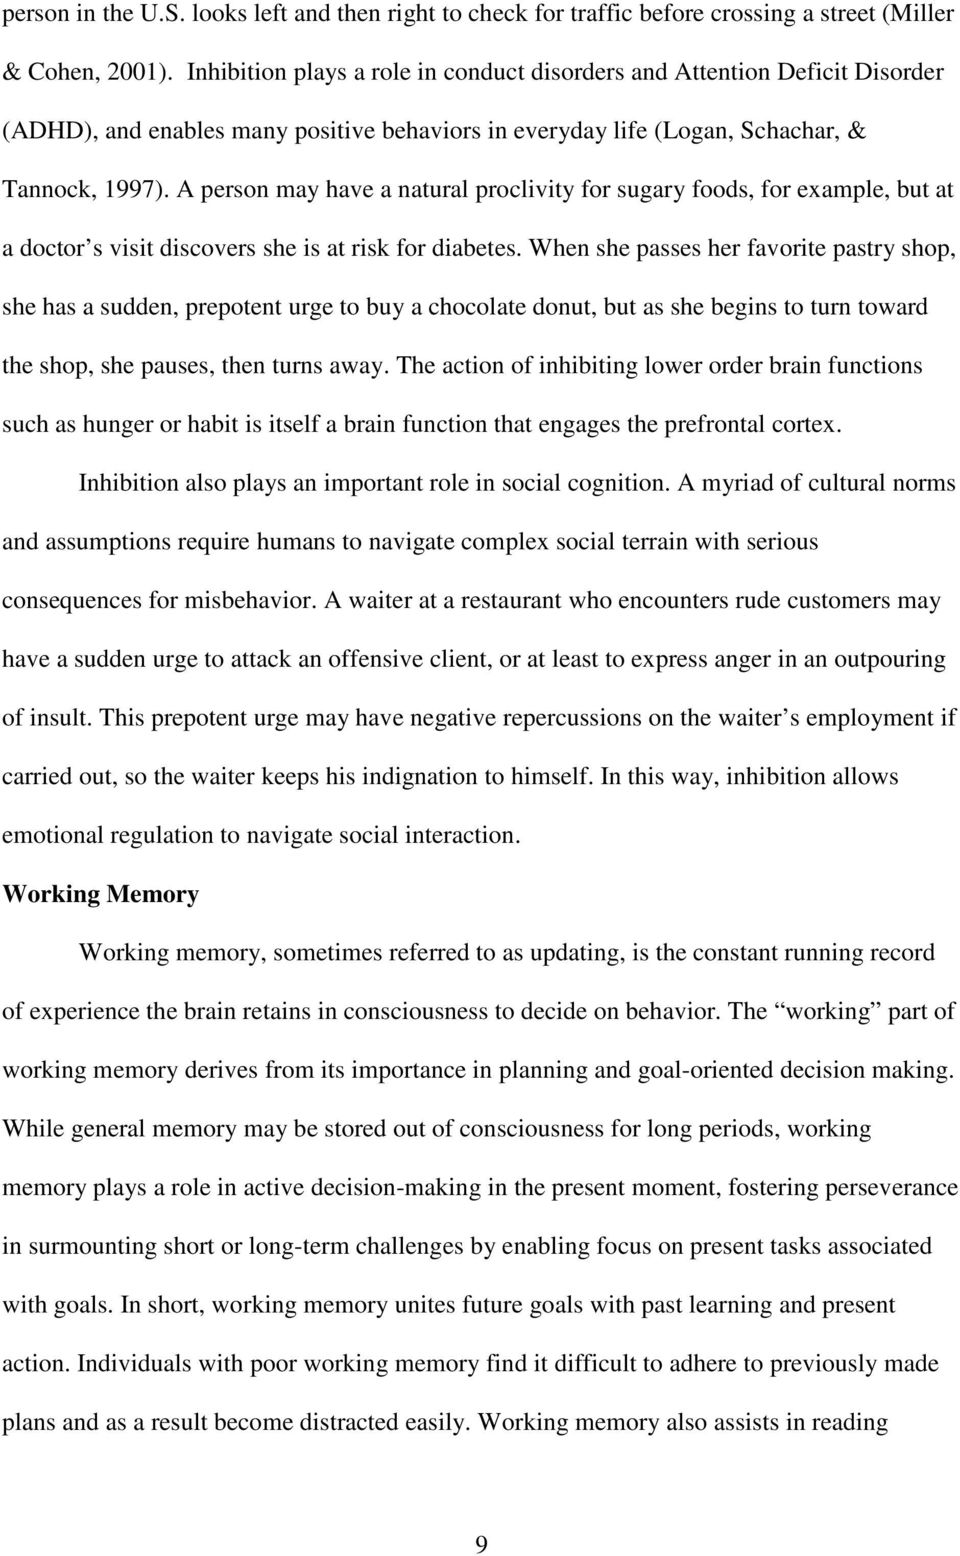 A person may have a natural proclivity for sugary foods, for example, but at a doctor s visit discovers she is at risk for diabetes.